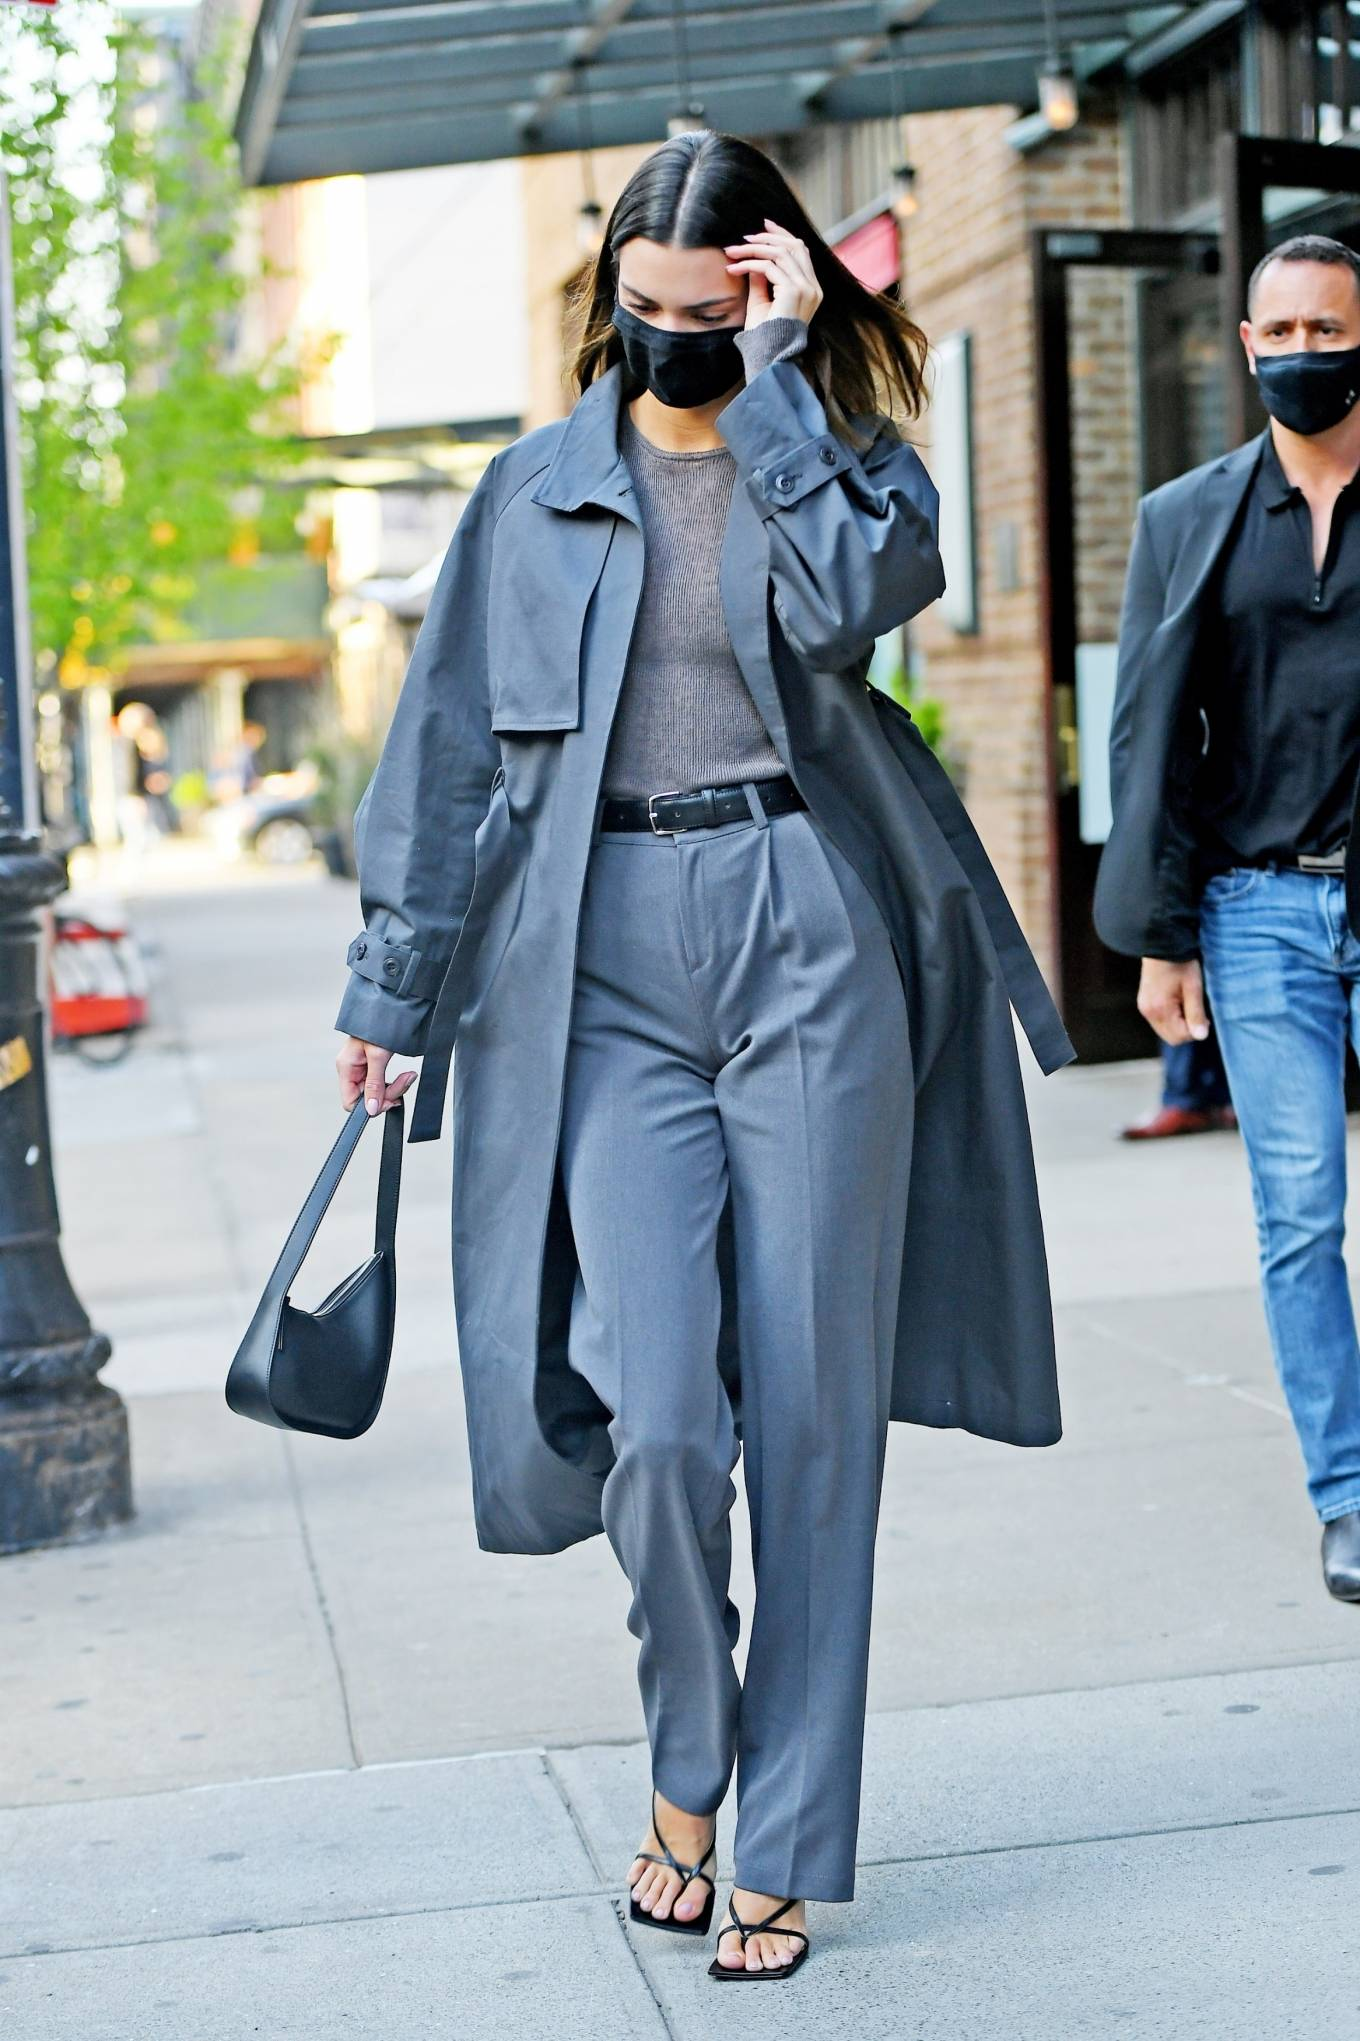 Kendall Jenner donning straight fit grey spandex pleated trousers with high waist with side pockets and a cotton material